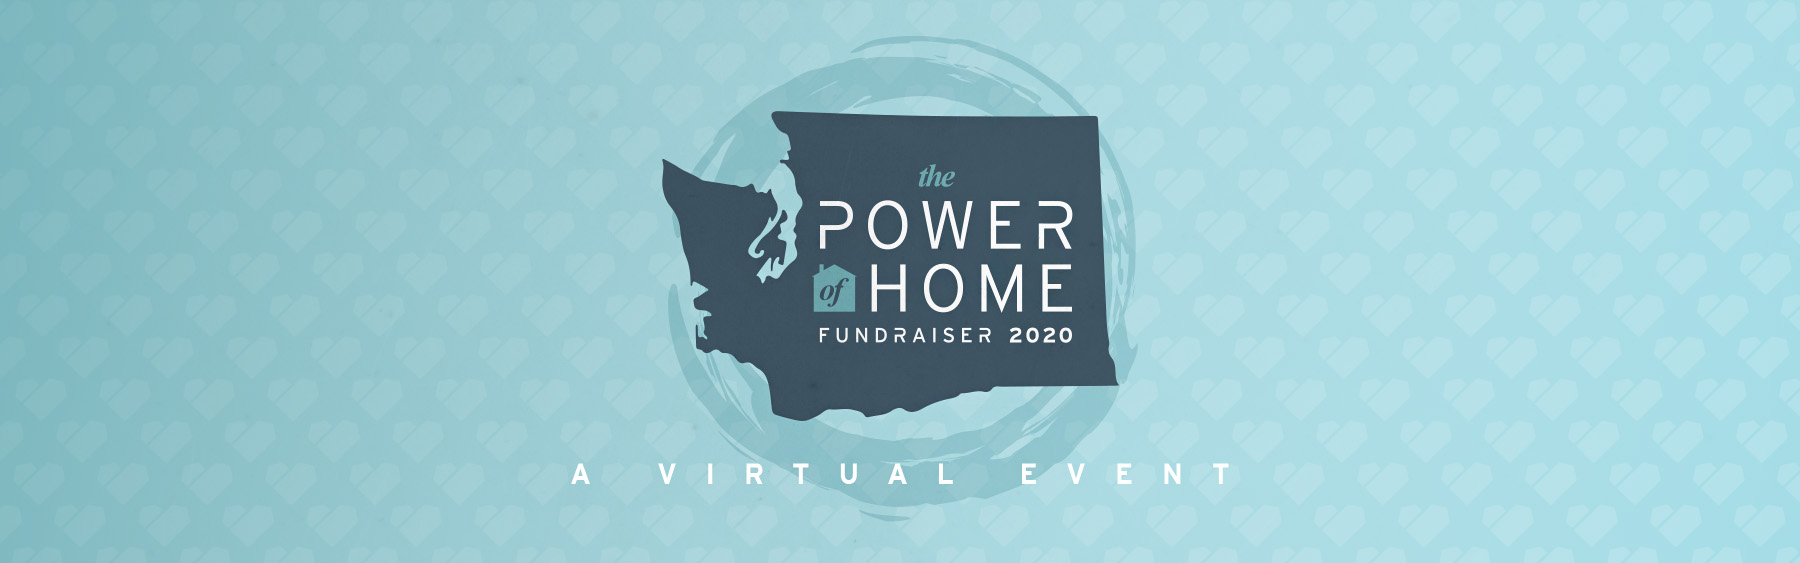 The Power of Home | Fundraiser 2020